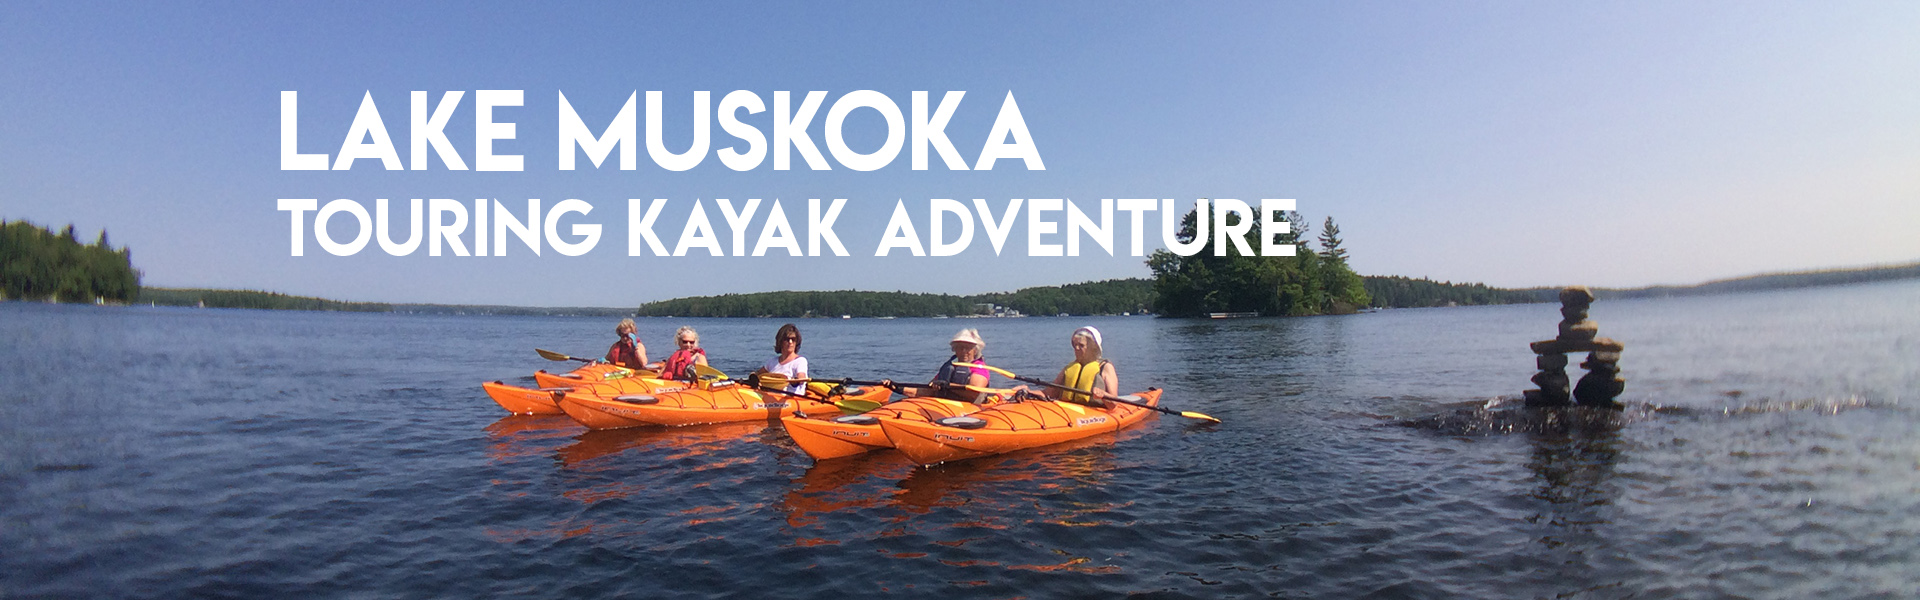 Lake Muskoka Touring Kayak Adventure